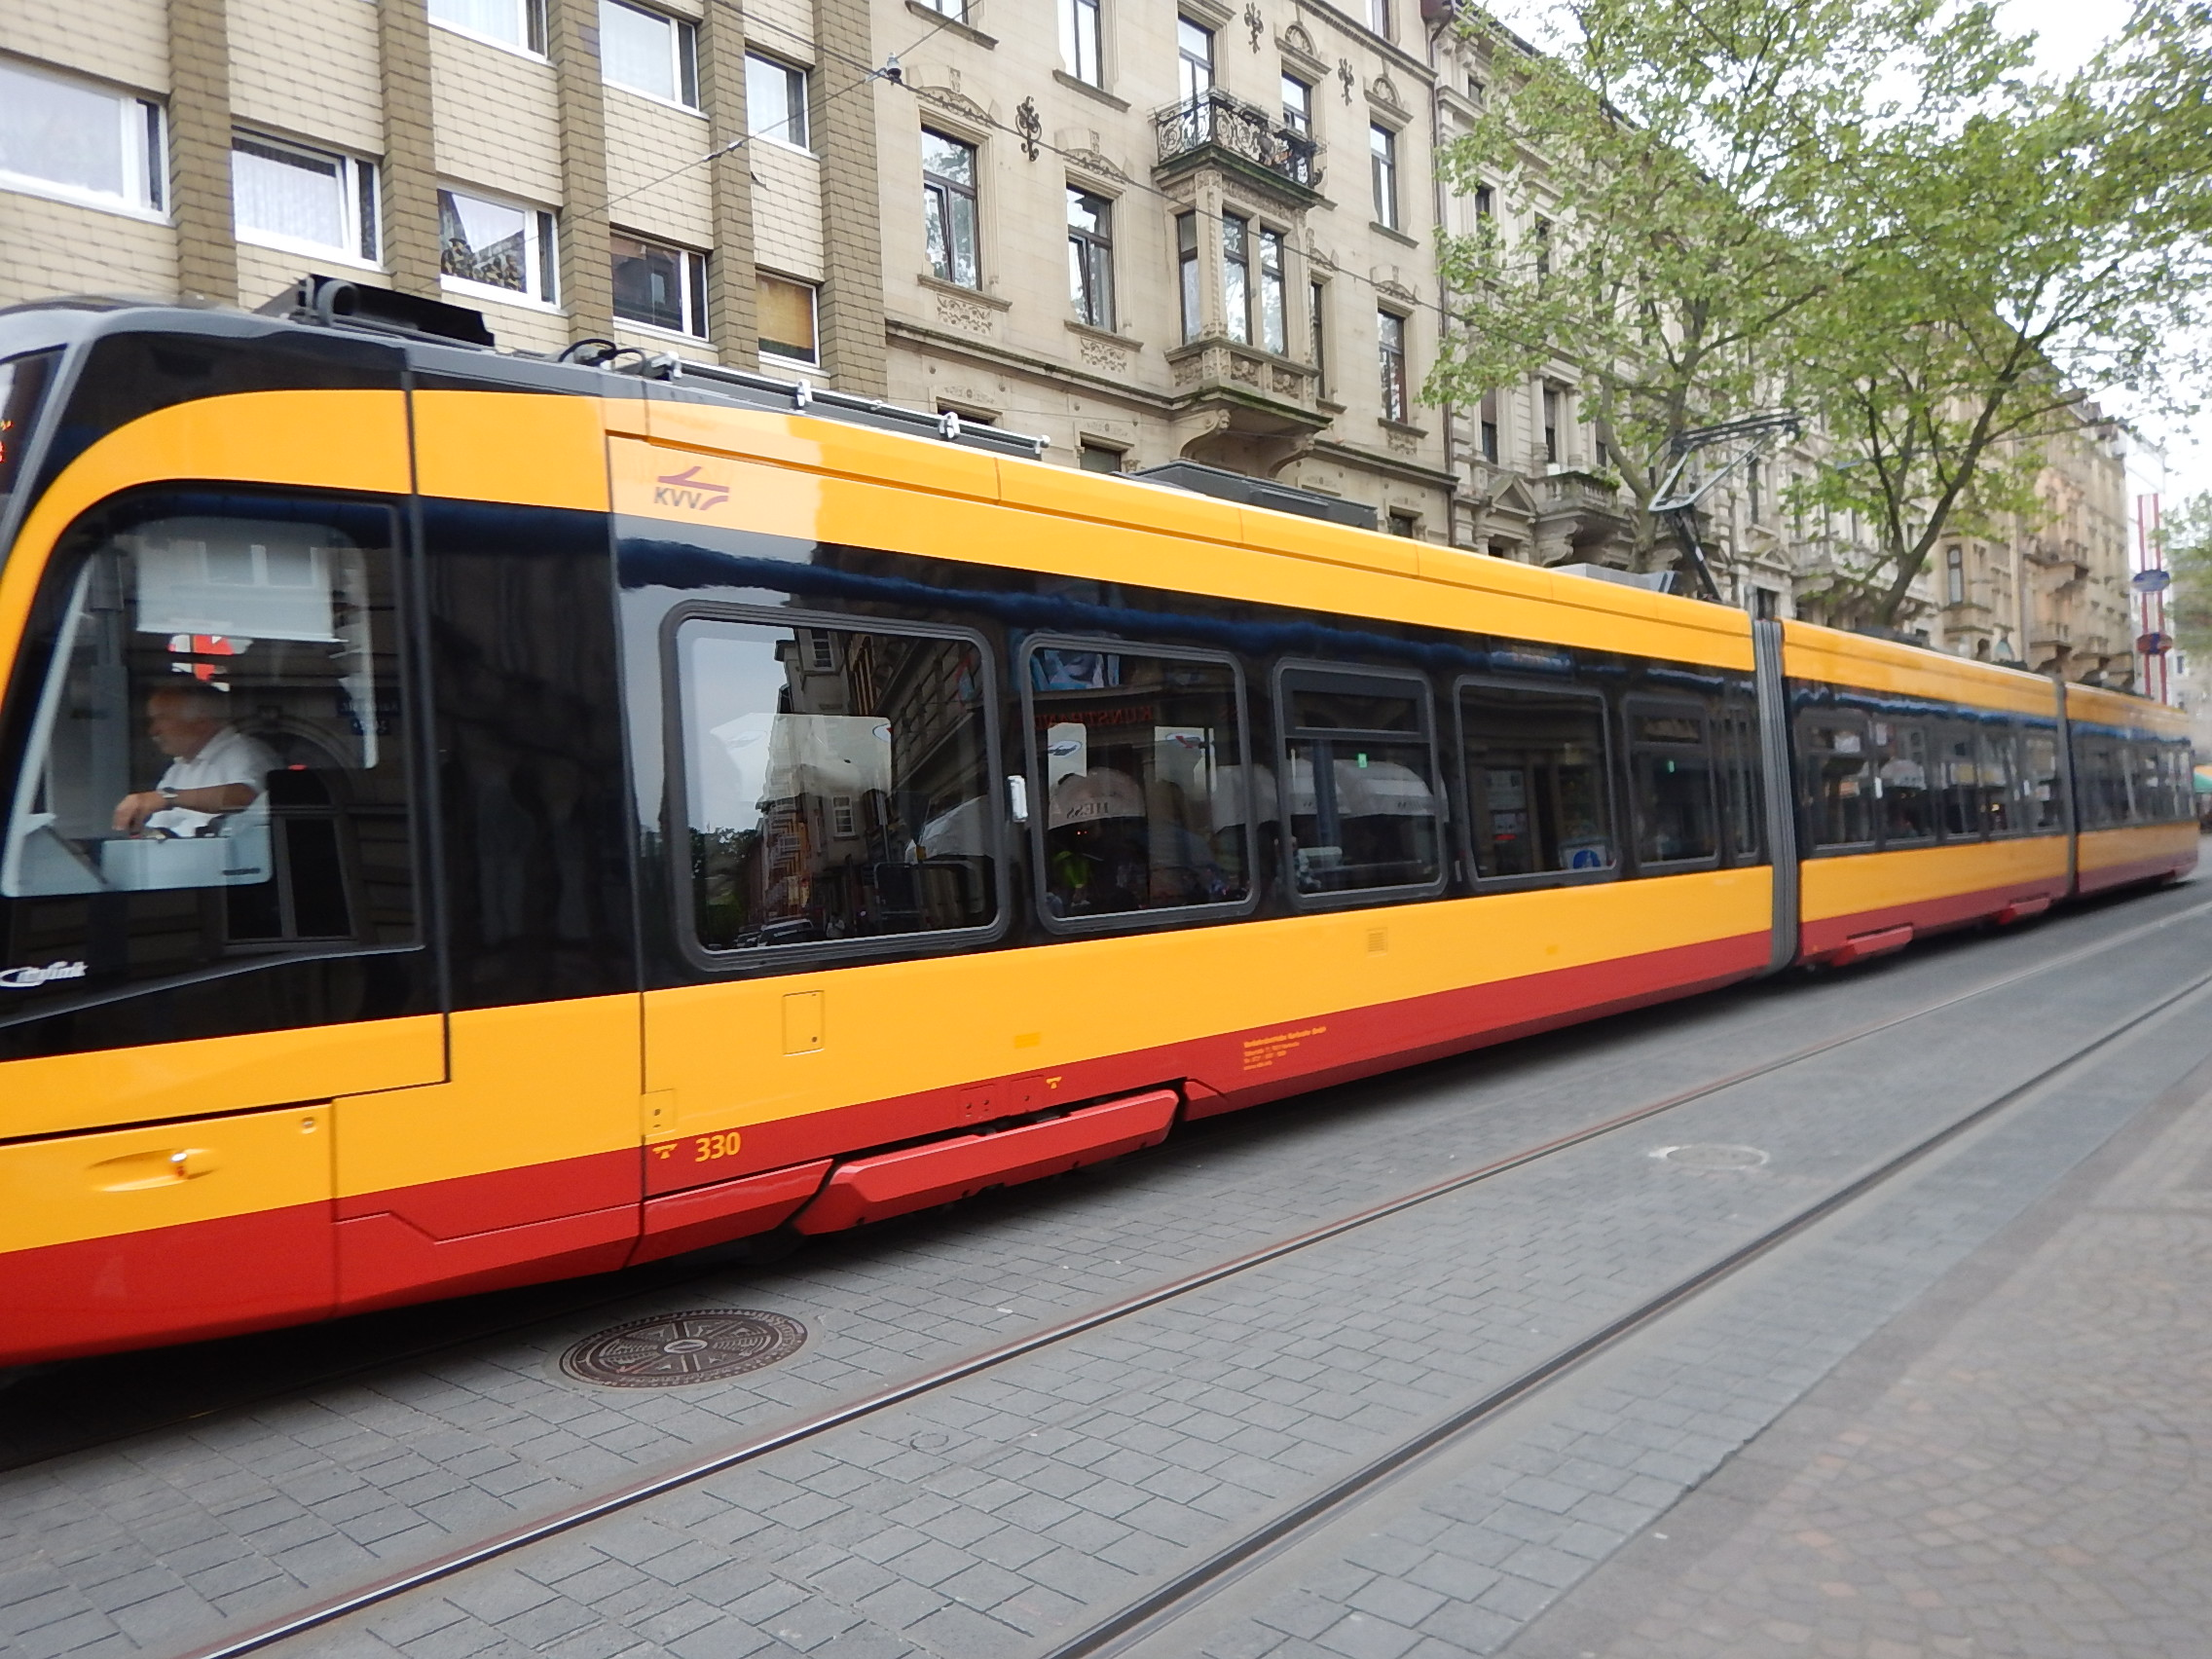 The Latest Citylink Tram-Trains In Karlsruhe « The Anonymous Widower